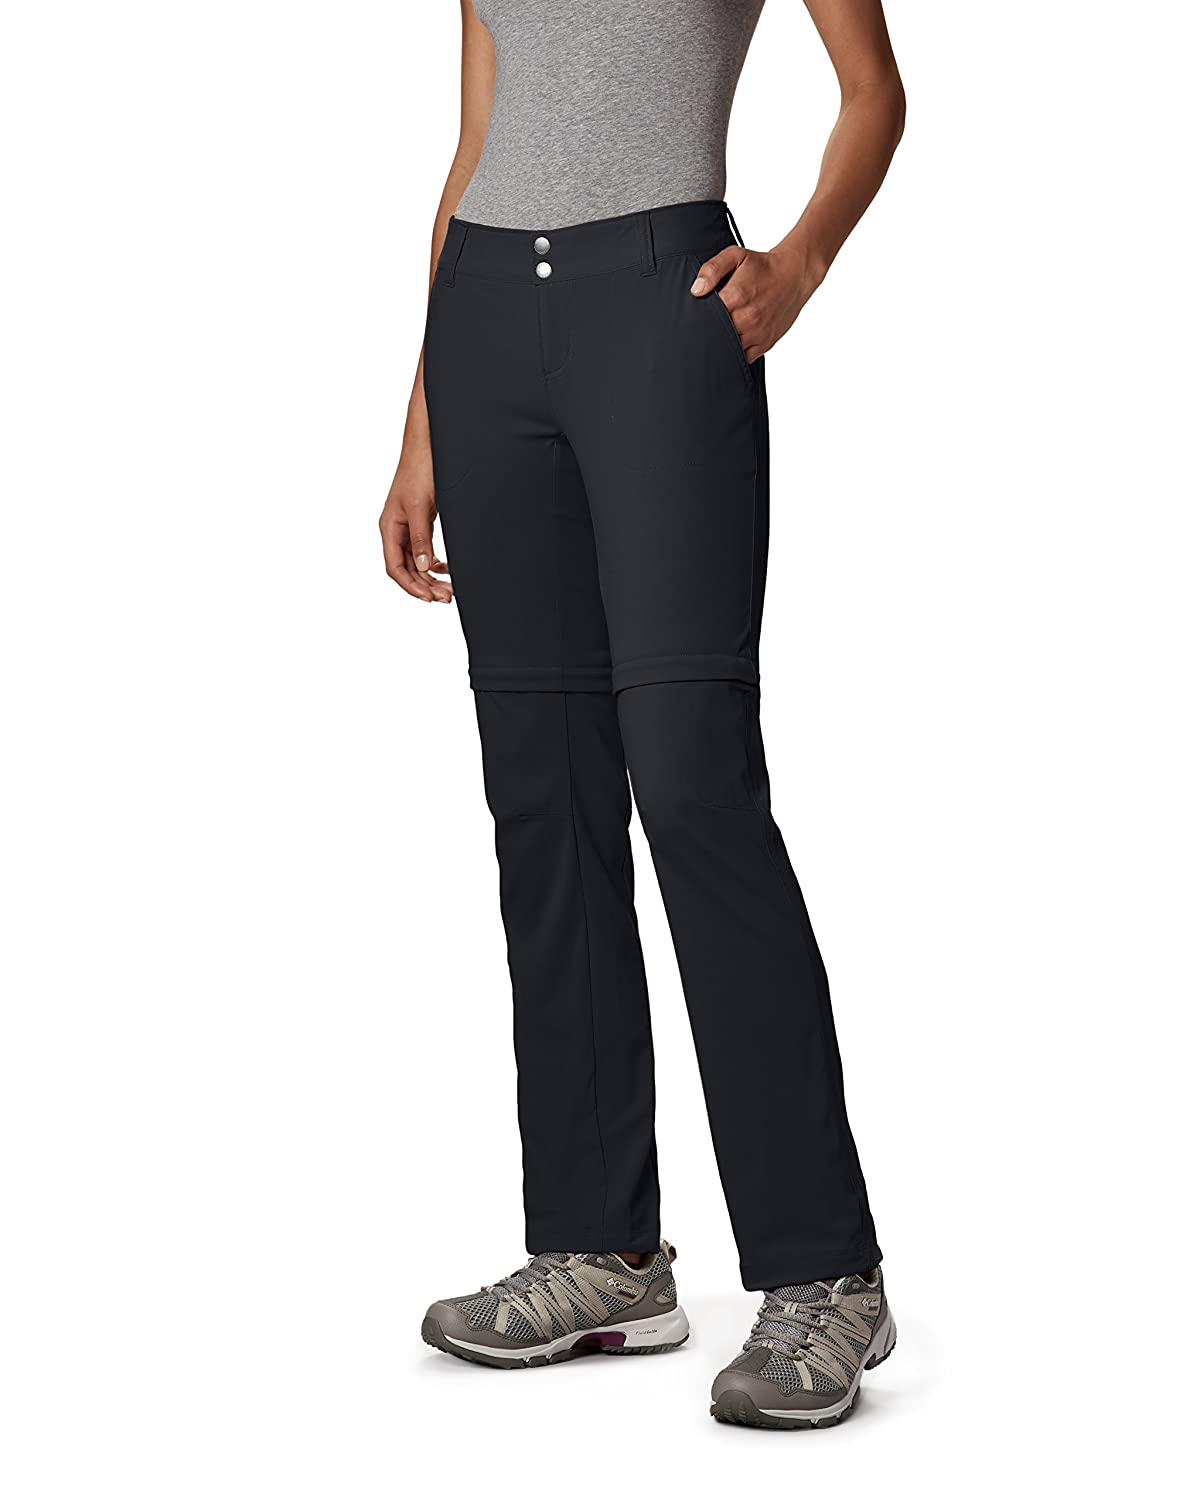 Columbia Women's Saturday Trail II Convertible Pants, Black, 8 Columbia (Sporting Goods) 1579851